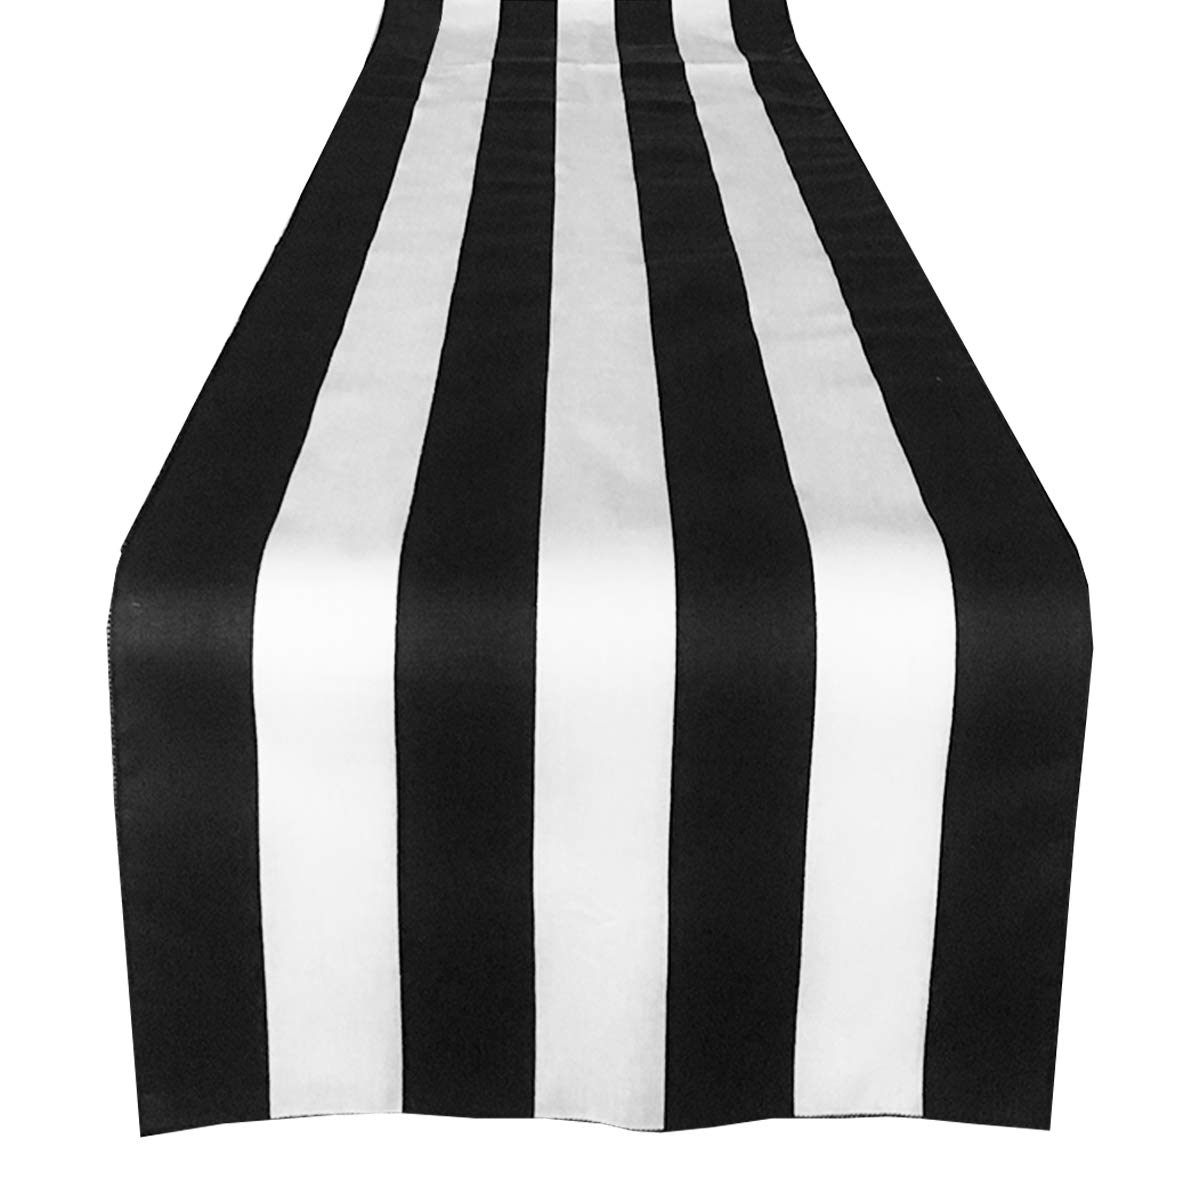 (36cm x 270cm, Black and White) - lovemyfabric Cotton 5.1cm Stripes For Wedding/Bridal Shower Birthdays Home Decor and Special Events Table Runner. (36cm x 270cm, Black and White) 14\ ブラック&ホワイト B06Y4Y27B2